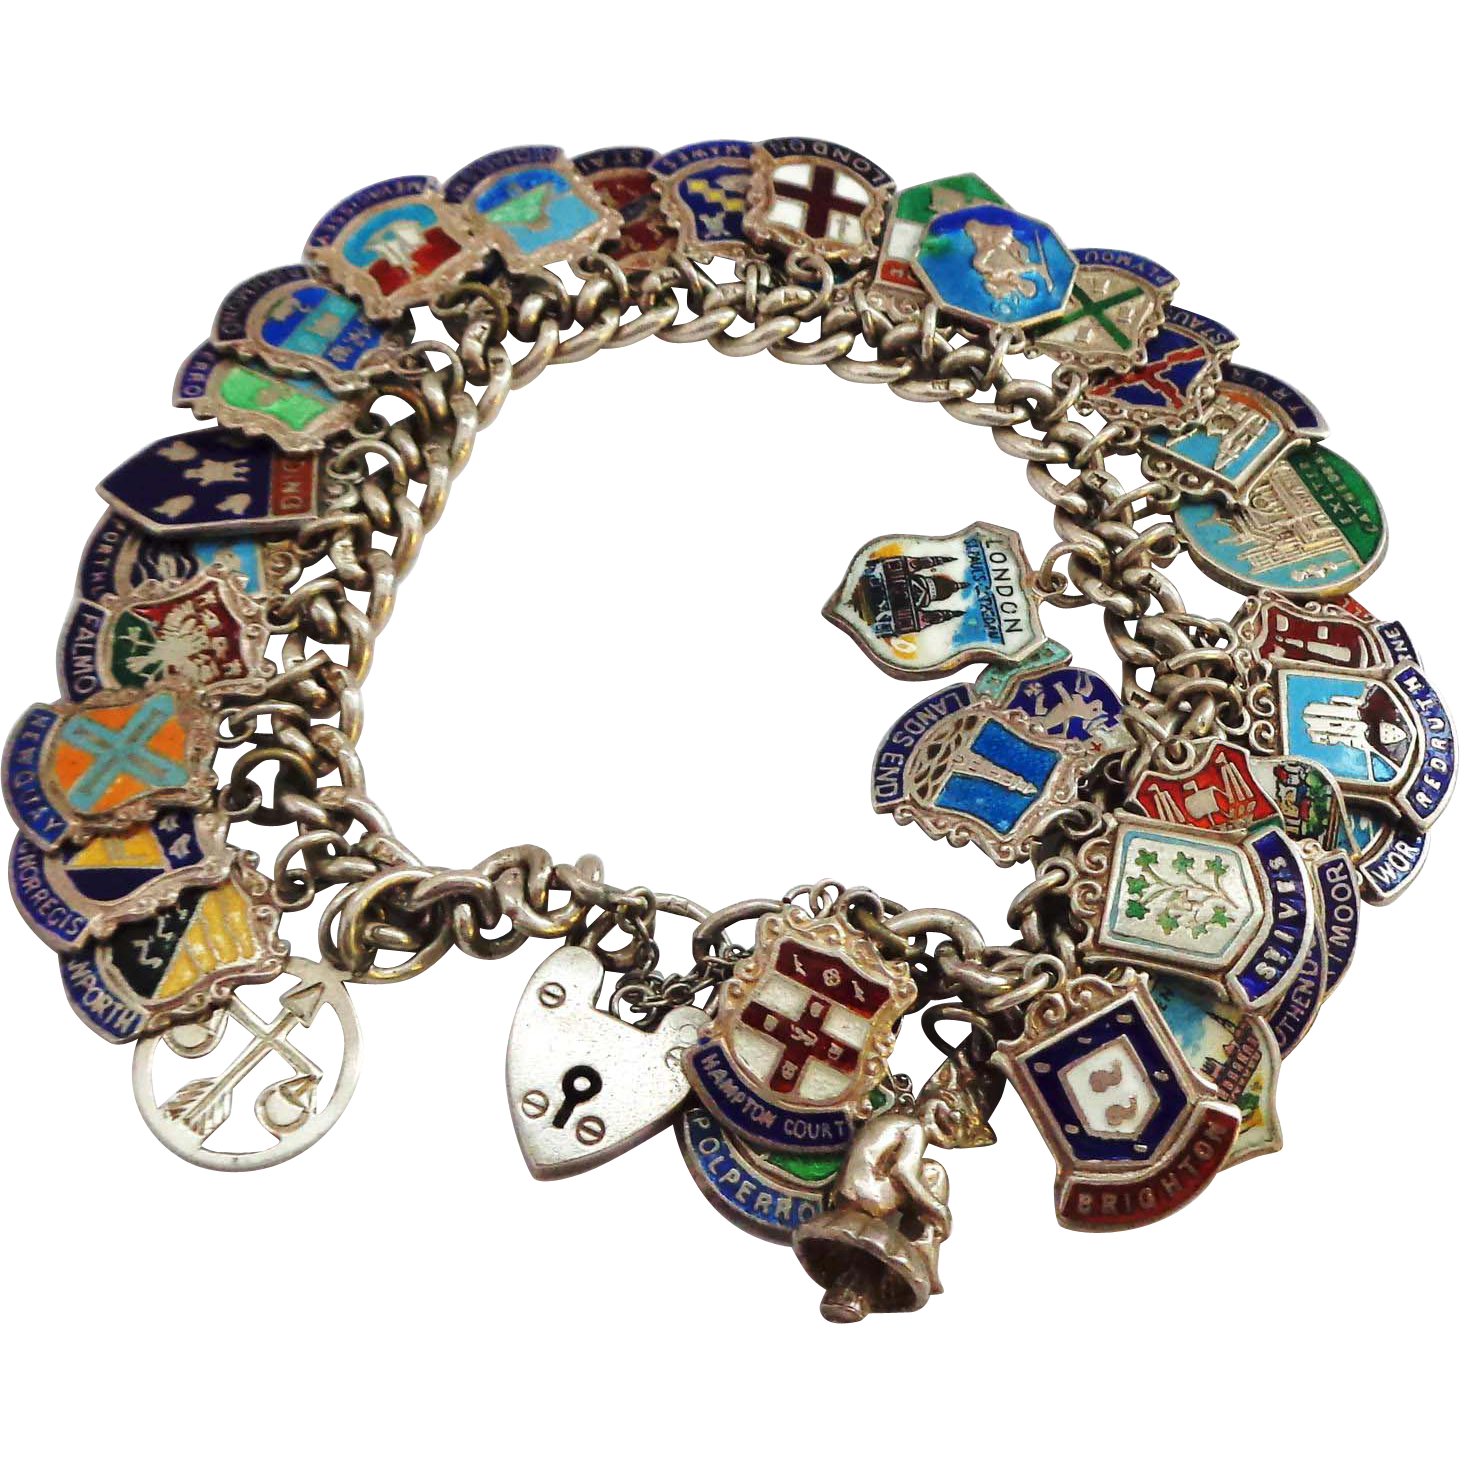 42 Loaded Enamel on Silver Travel Charms on Sterling Silver Bracelet Tour of UK